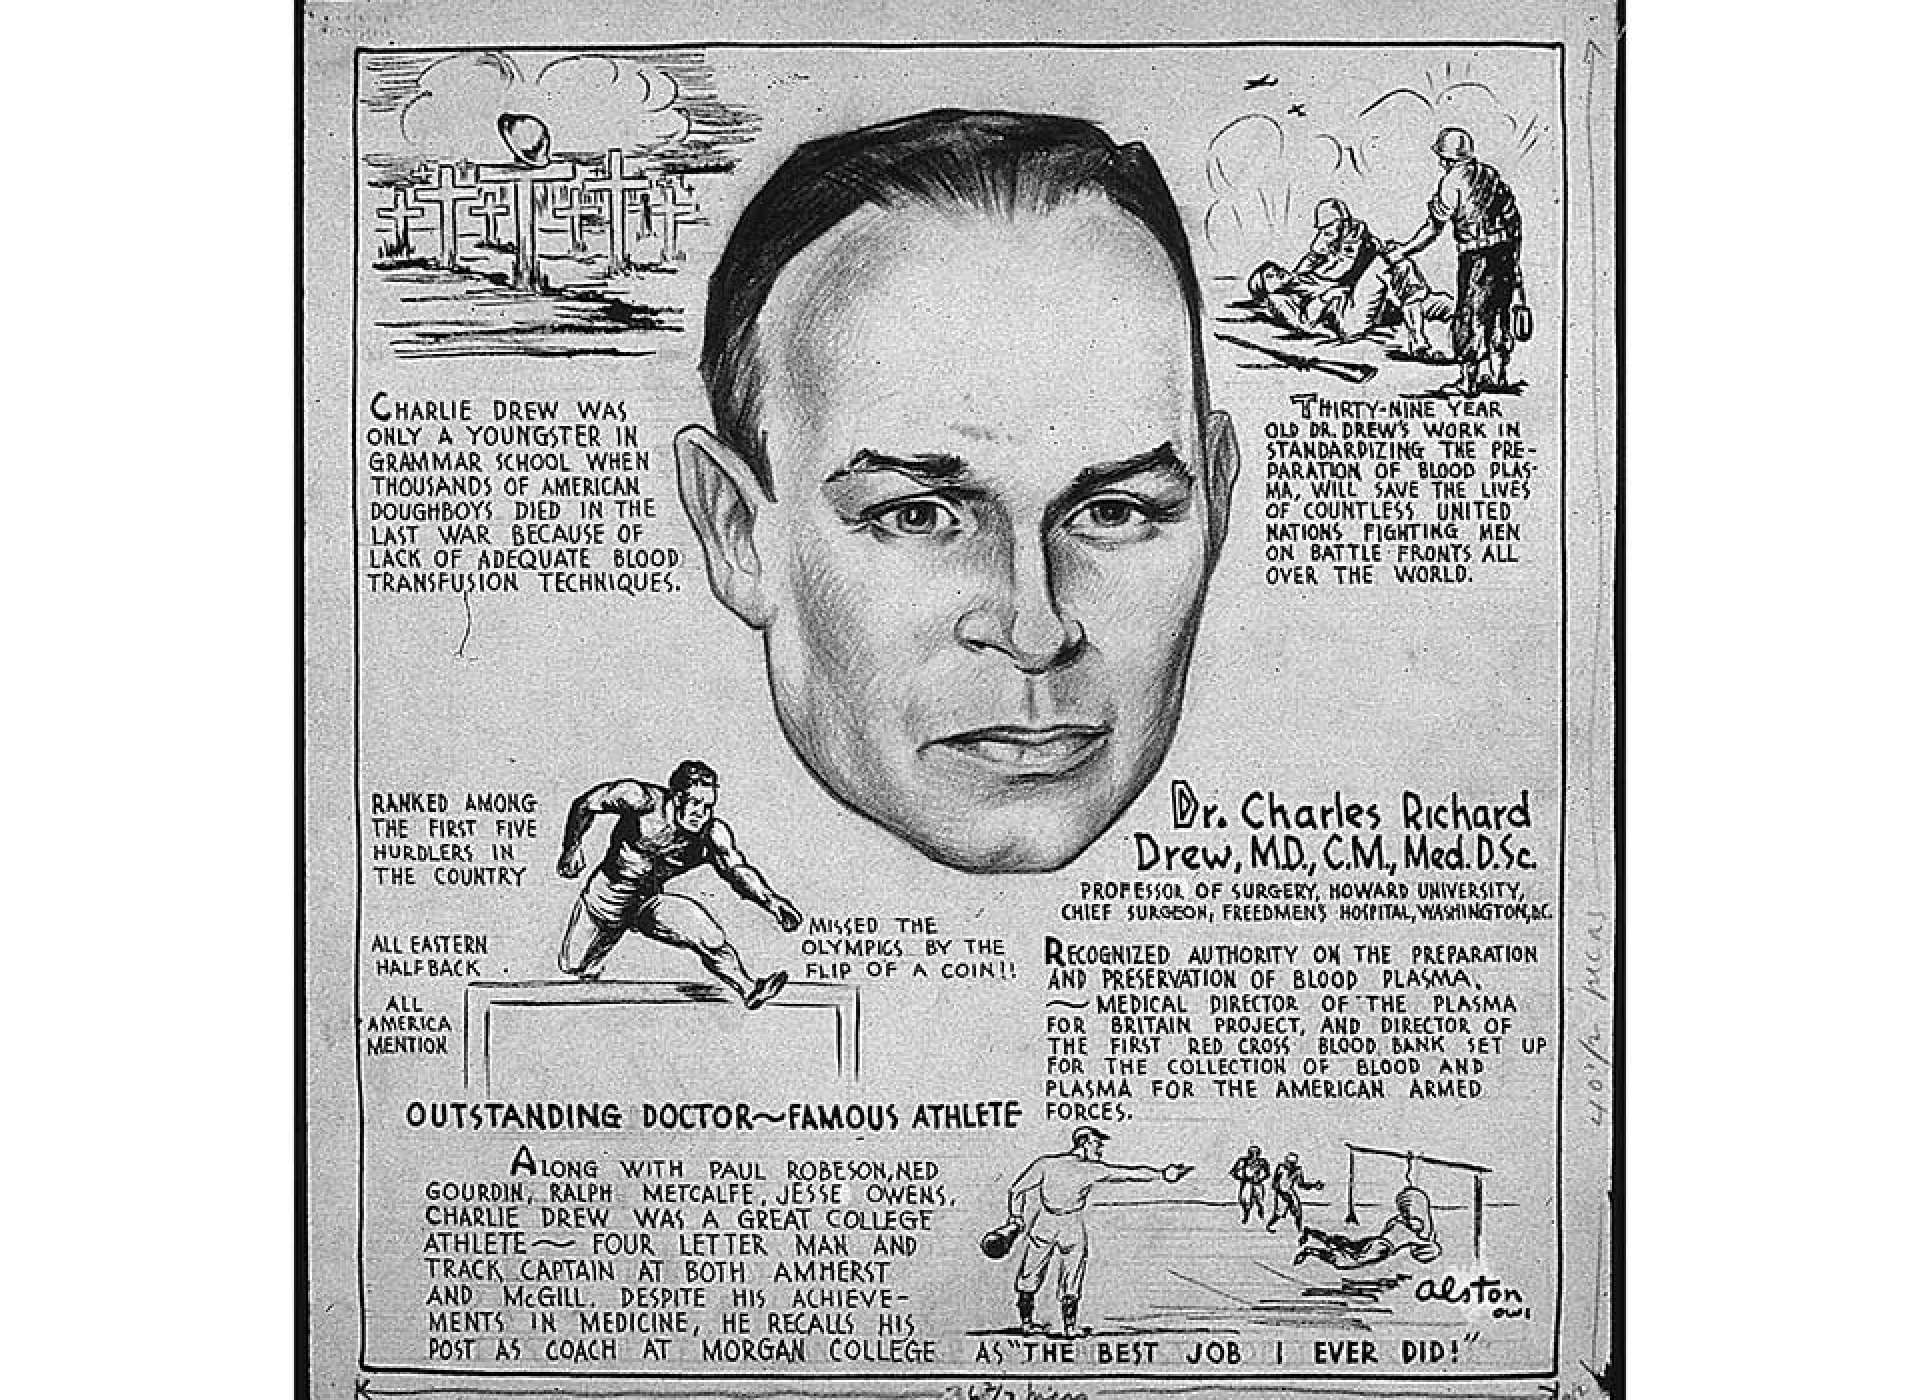 A summary of the life of Charles Drew by artist Charles Alston, 1943; NARA 535693.